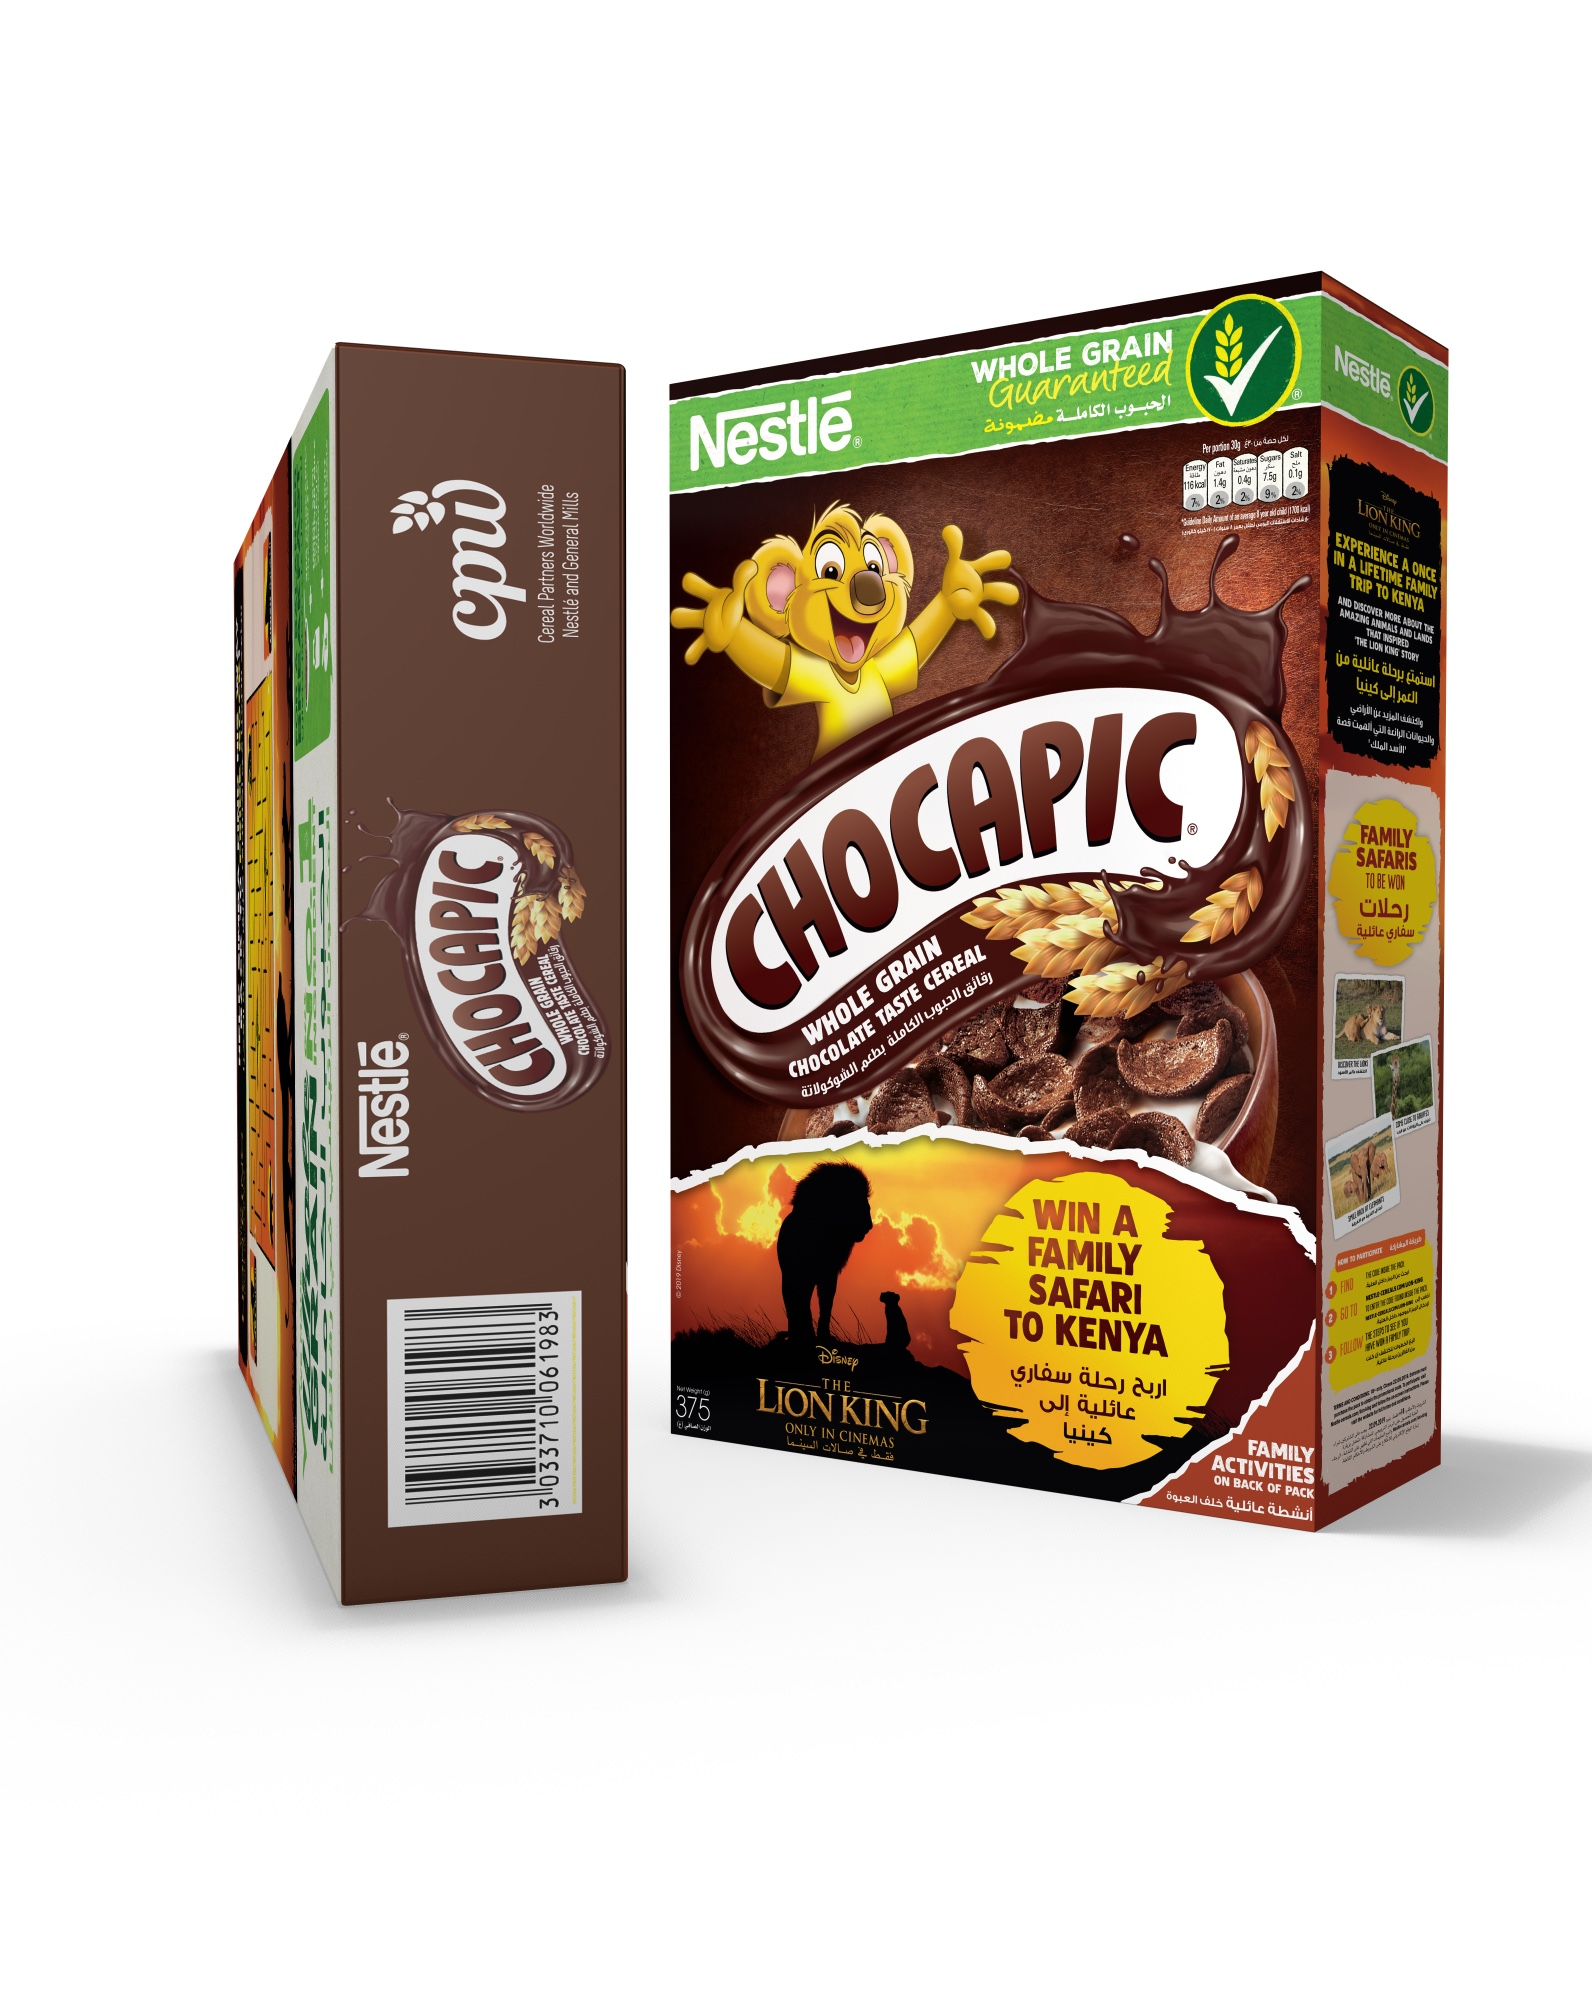 19_J03237_LionKing Packs_Chocapic.jpg